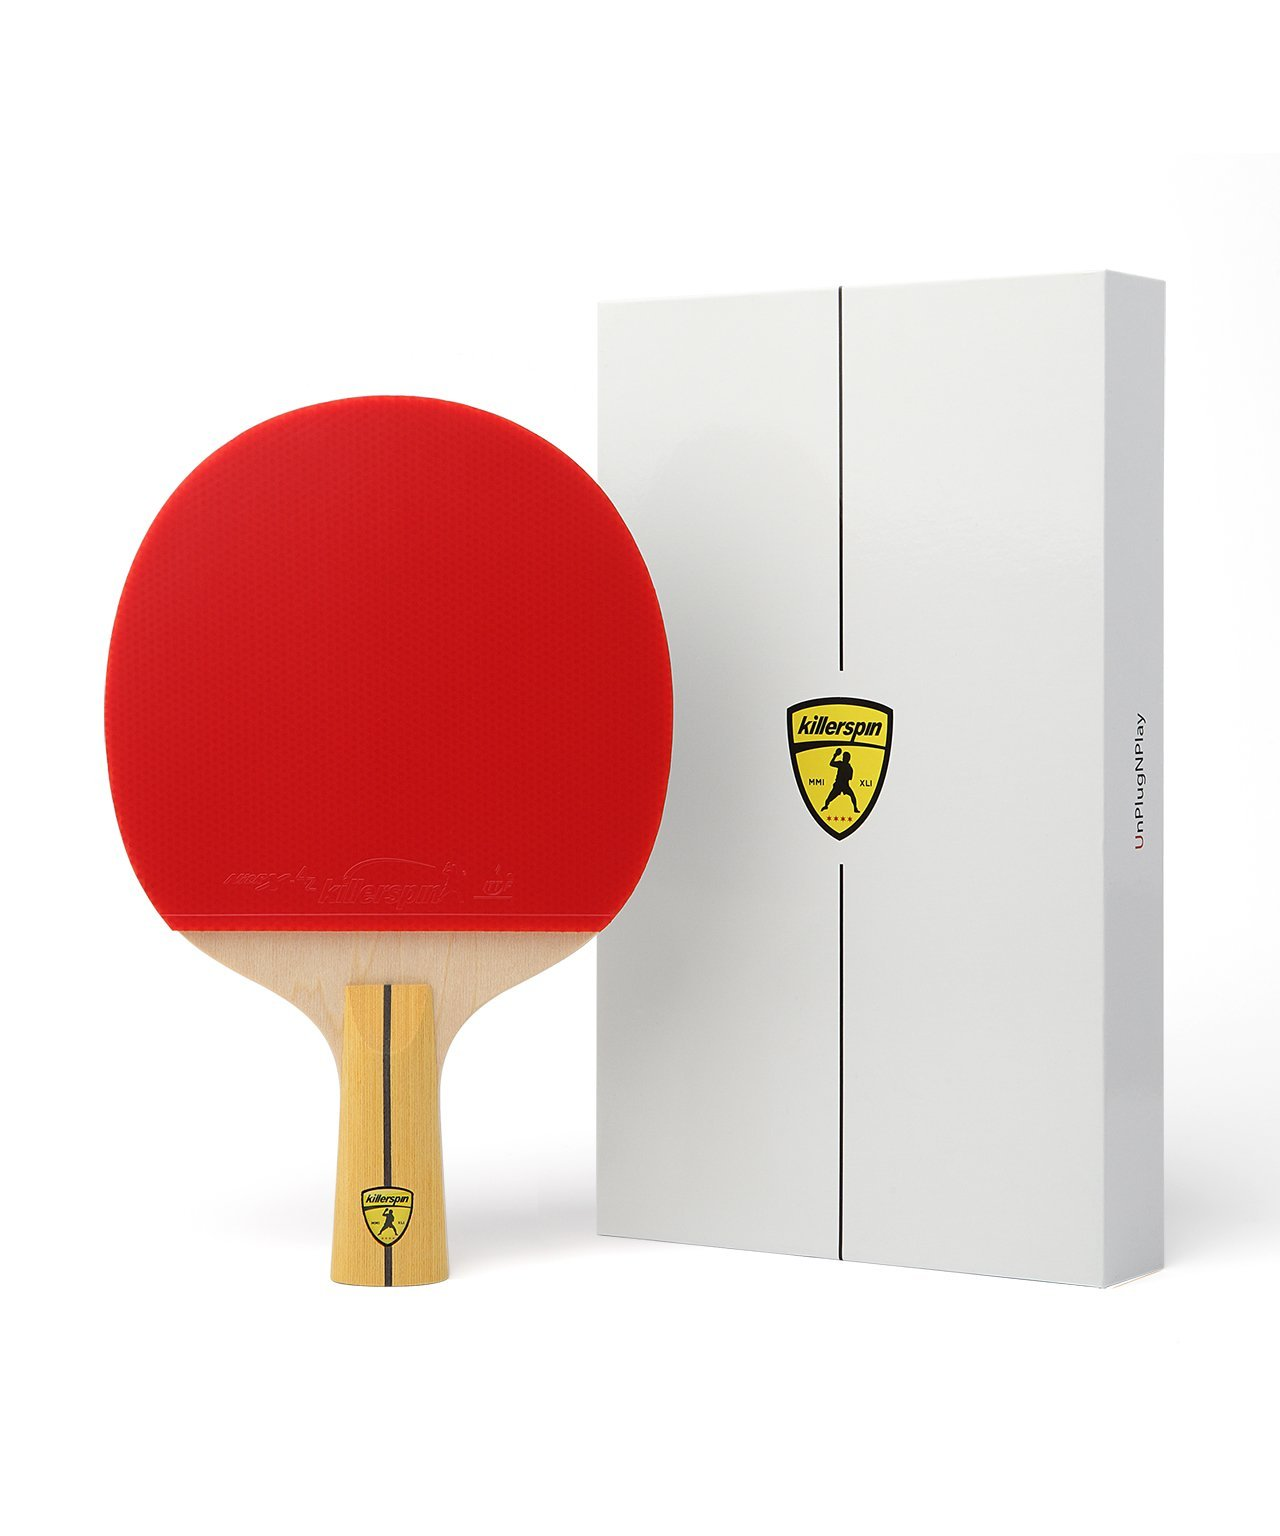 Killerspin Jet400 Table Tennis Paddle, Penhold